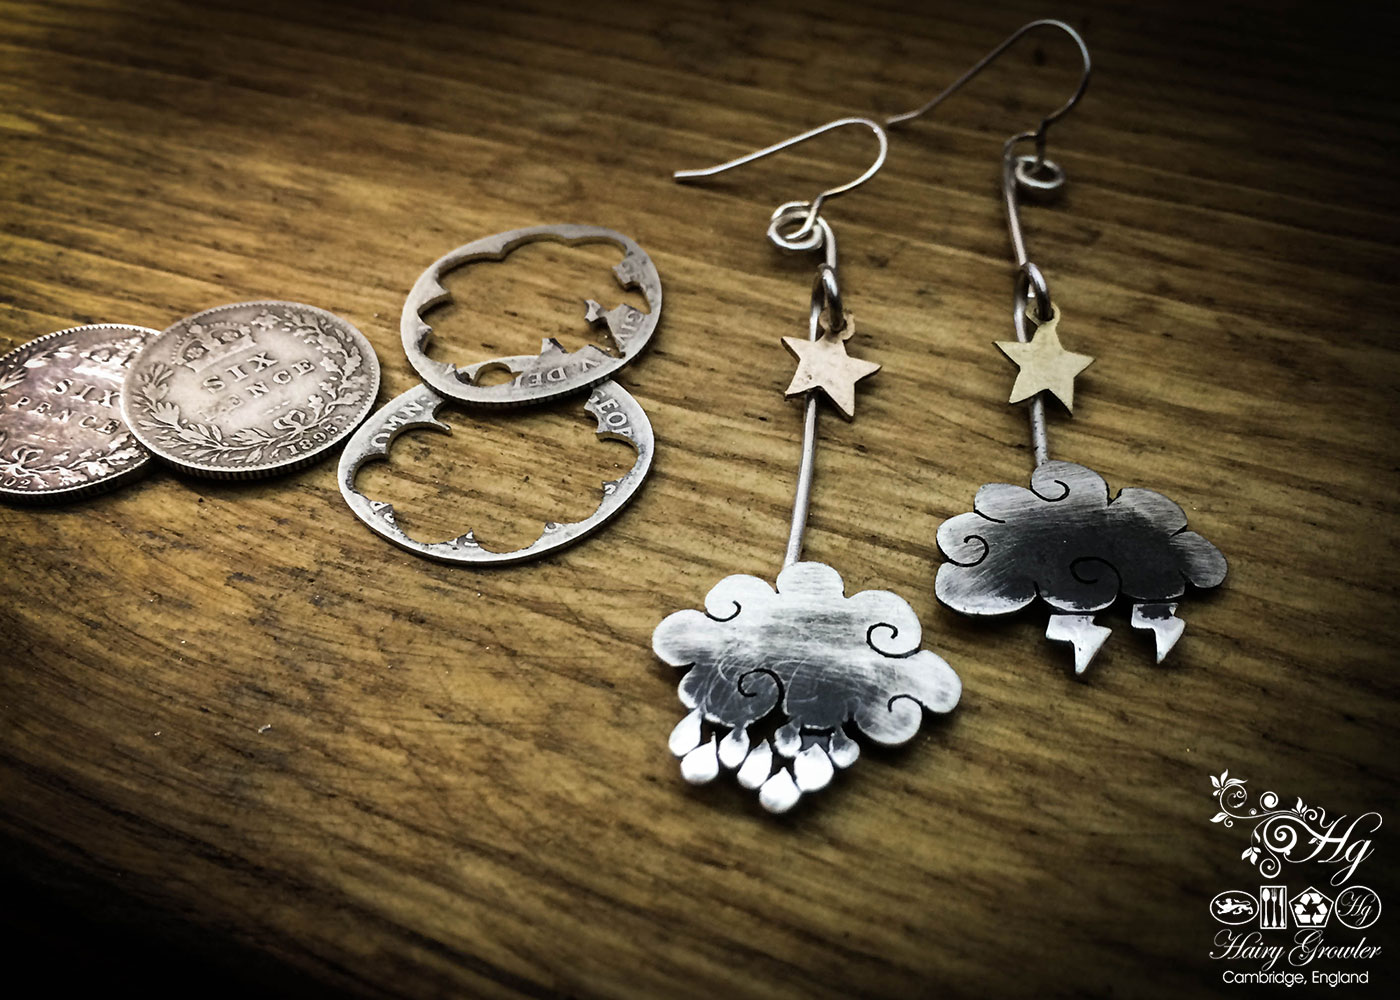 The Official Hairy Growler Jewellery Co. Cambridge - handcrafted and recycled silver sixpence cloud earrings